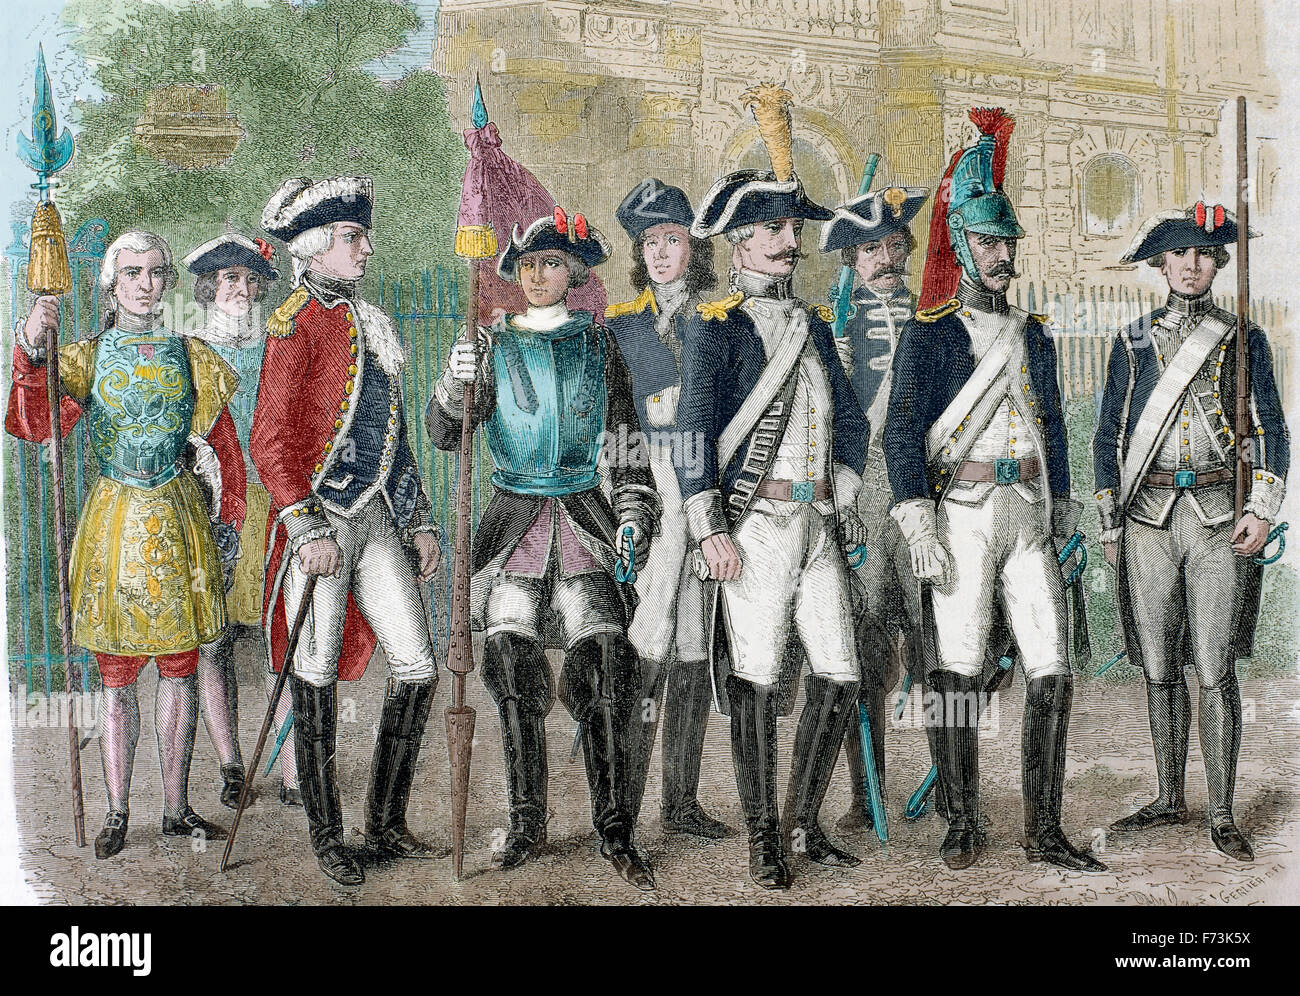 Soldiers of the National Guard during the French Revolution. Engraving, 19th century. Colored. - Stock Image